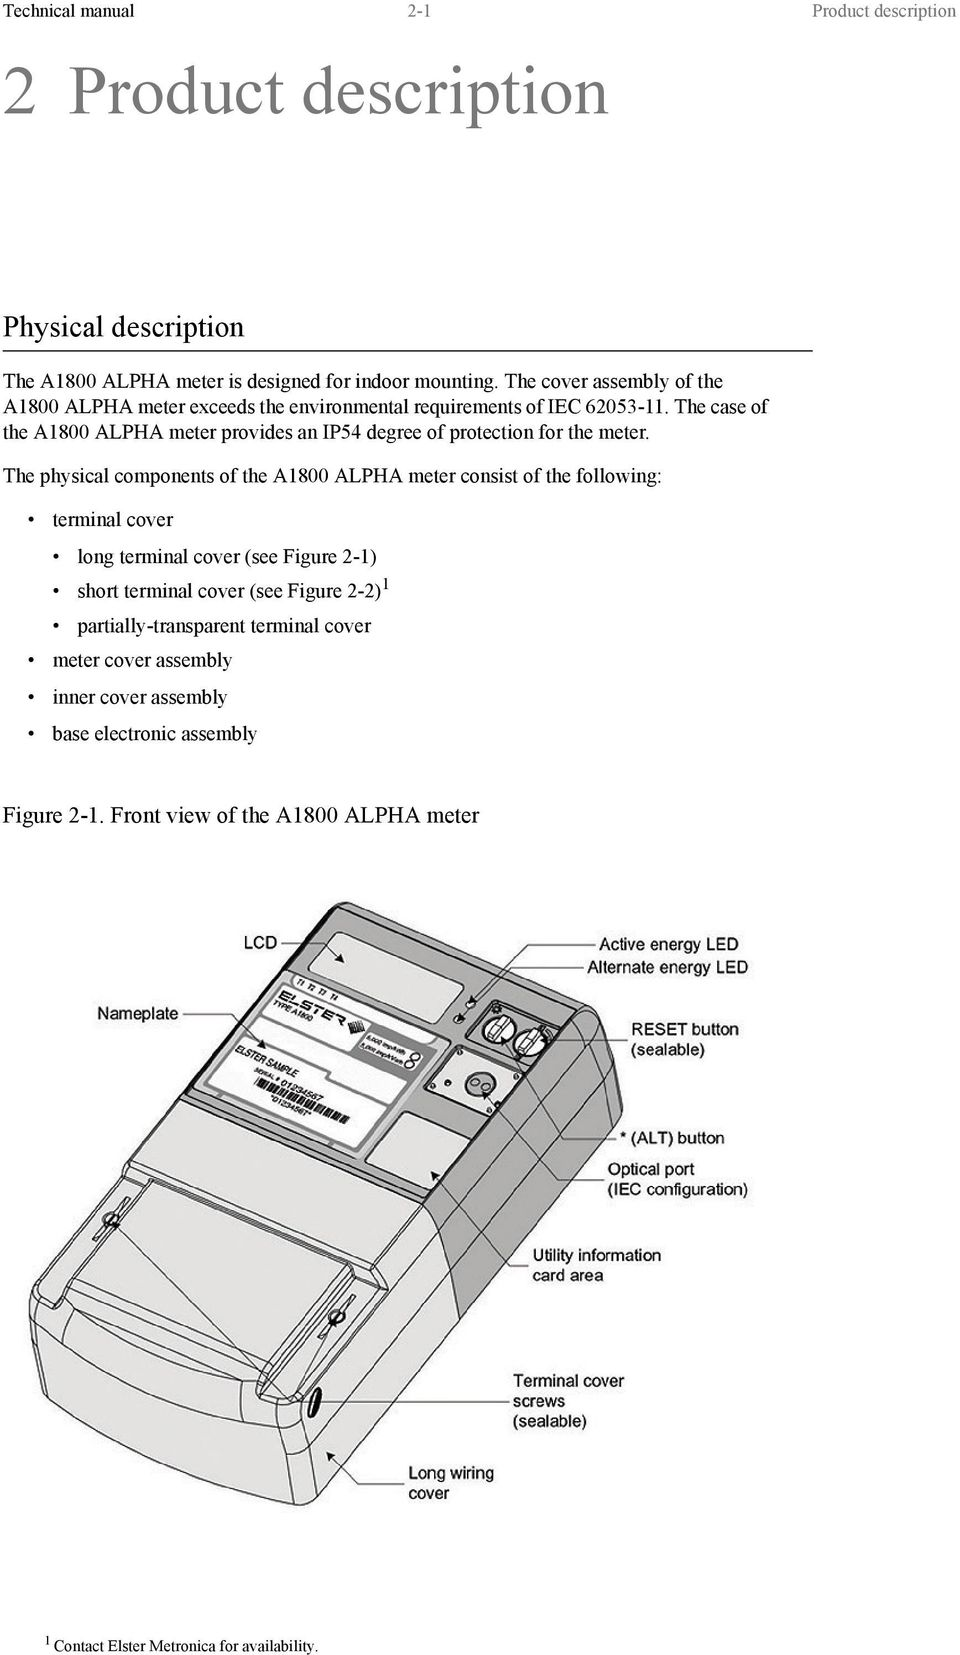 A3 Alpha Meter Wiring Diagram Trusted Diagrams A1800 Technical Manual Rev Pdf Electric Forms